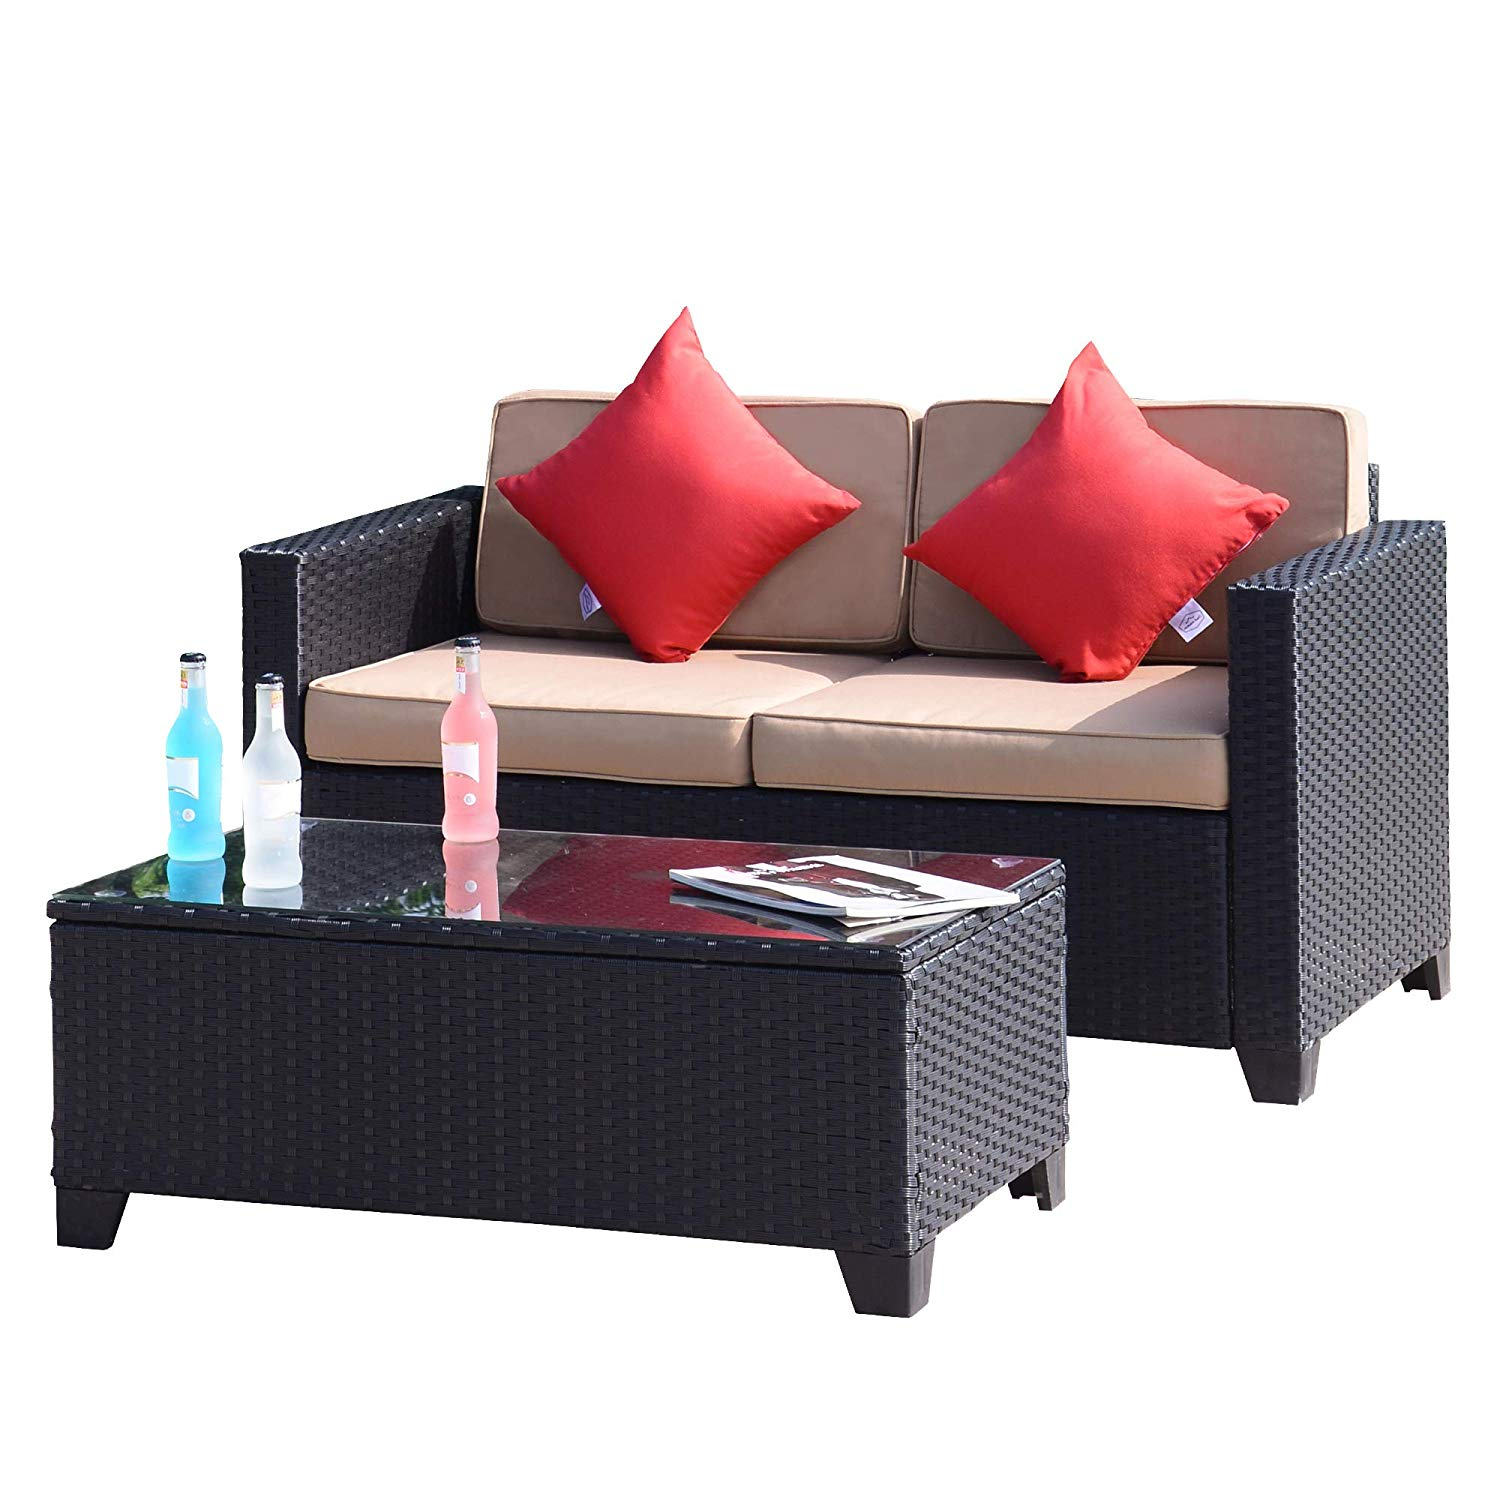 FurniTure Outdoor Wicker Love Seat Set 2 PC Patio Rattan Set Garden Rattan Wicker Sofa Set Table Seat, Black Wicker with Khaki Cushions